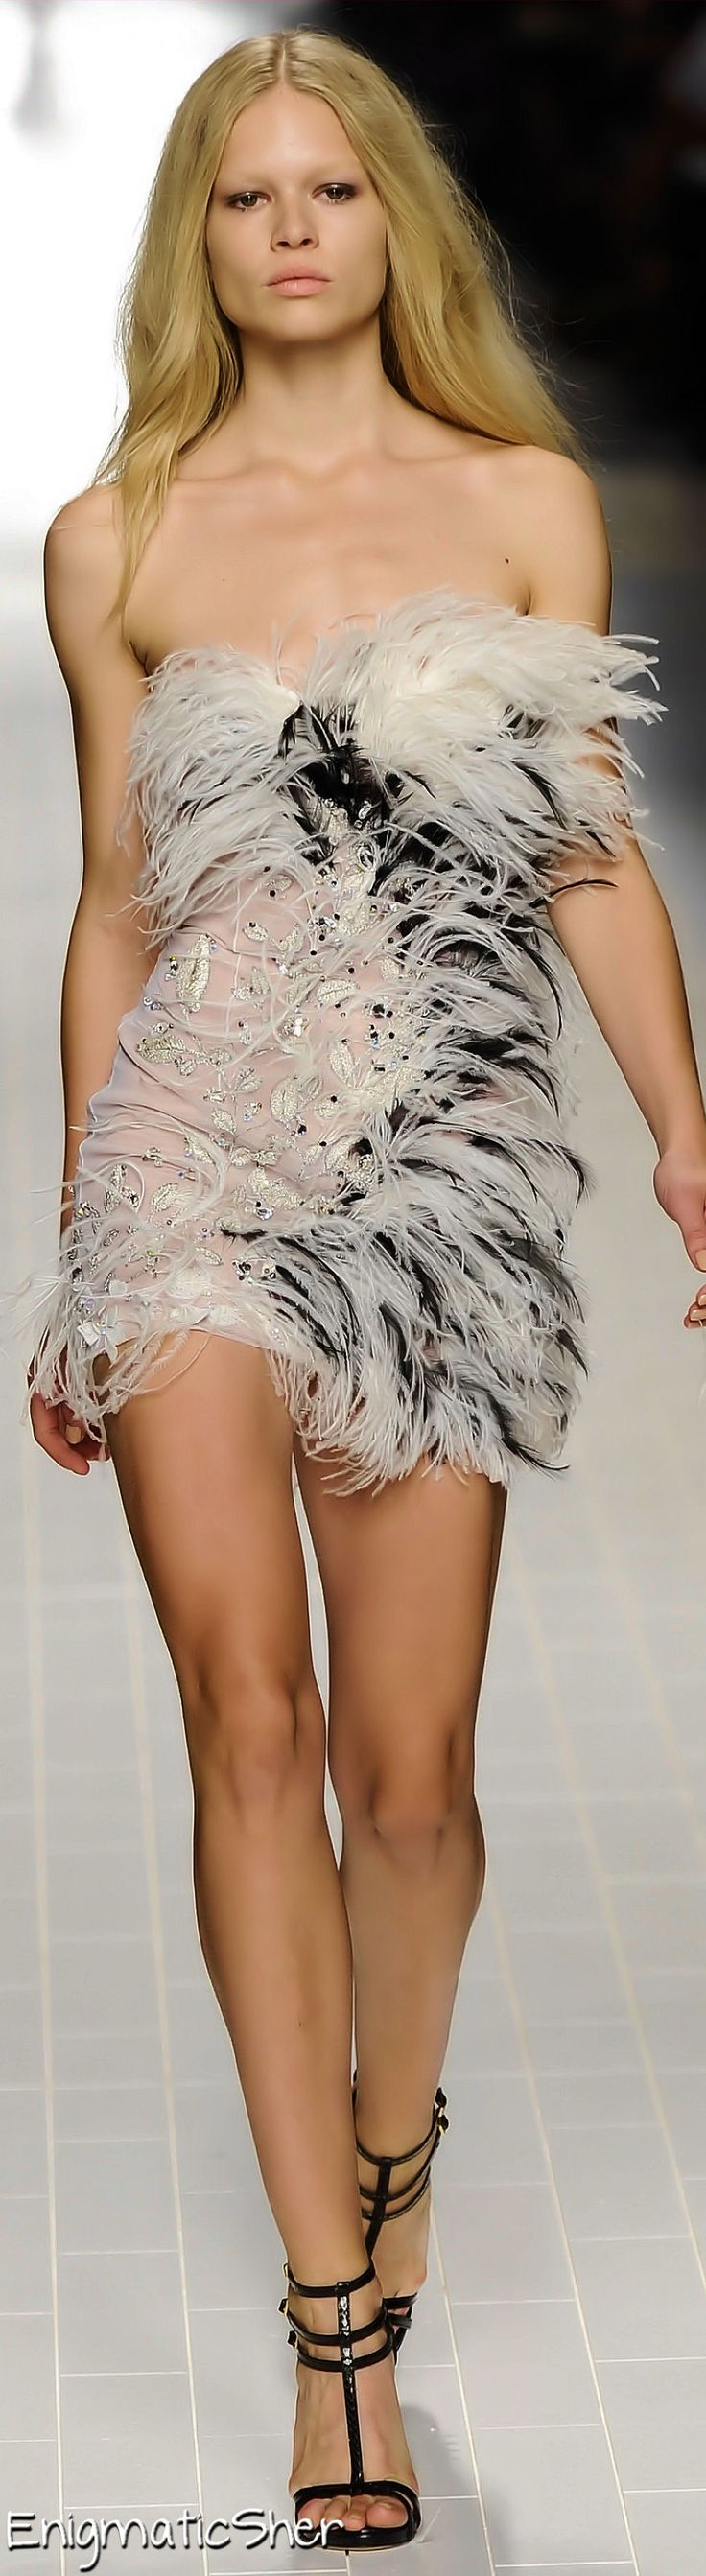 Blumarine Spring Summer 2014 Ready-To-Wear